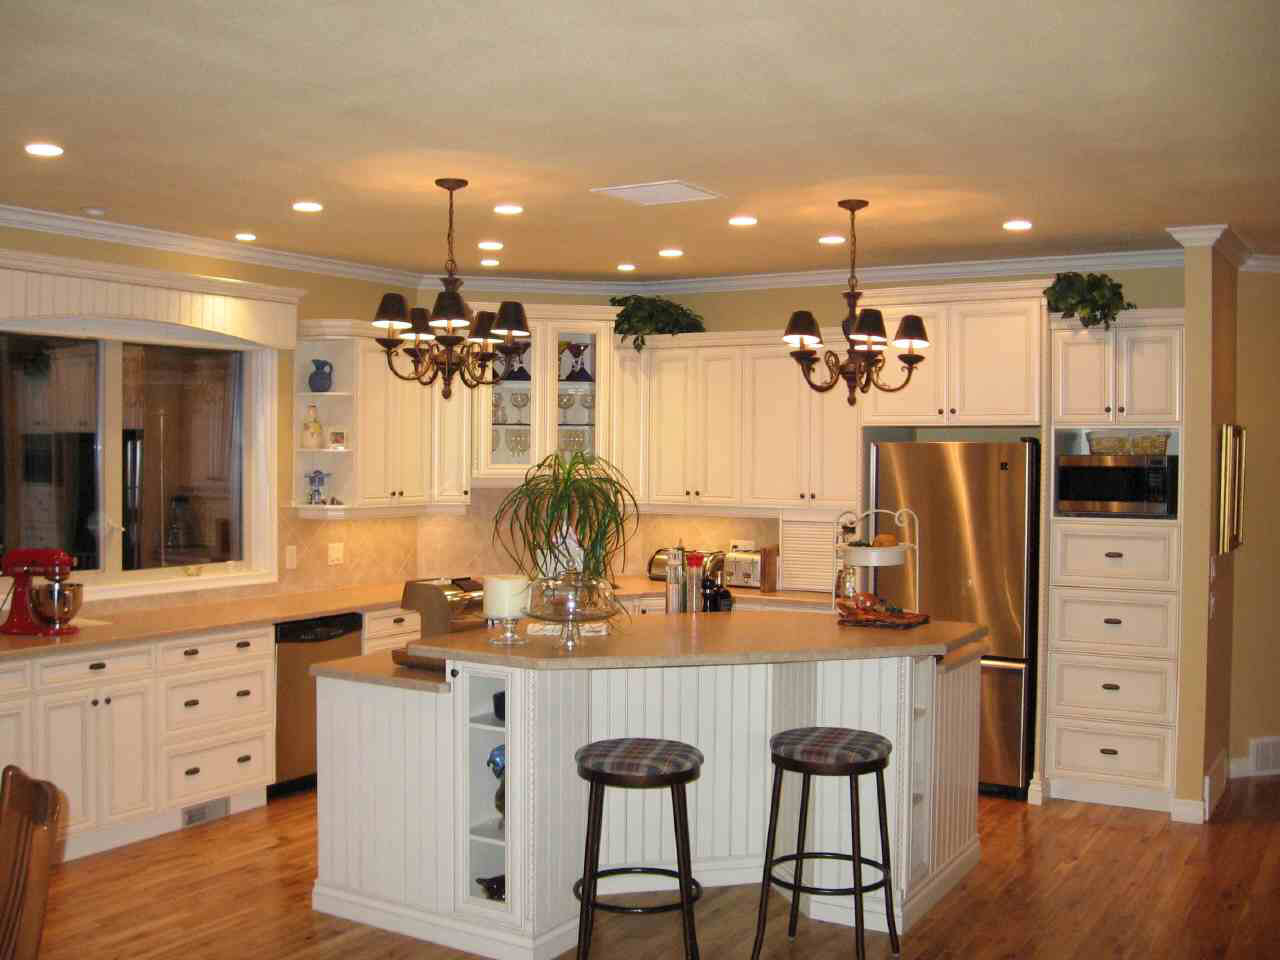 Peartreedesigns beautiful modern kitchen interiors photos images - Kitchen interior desing ...